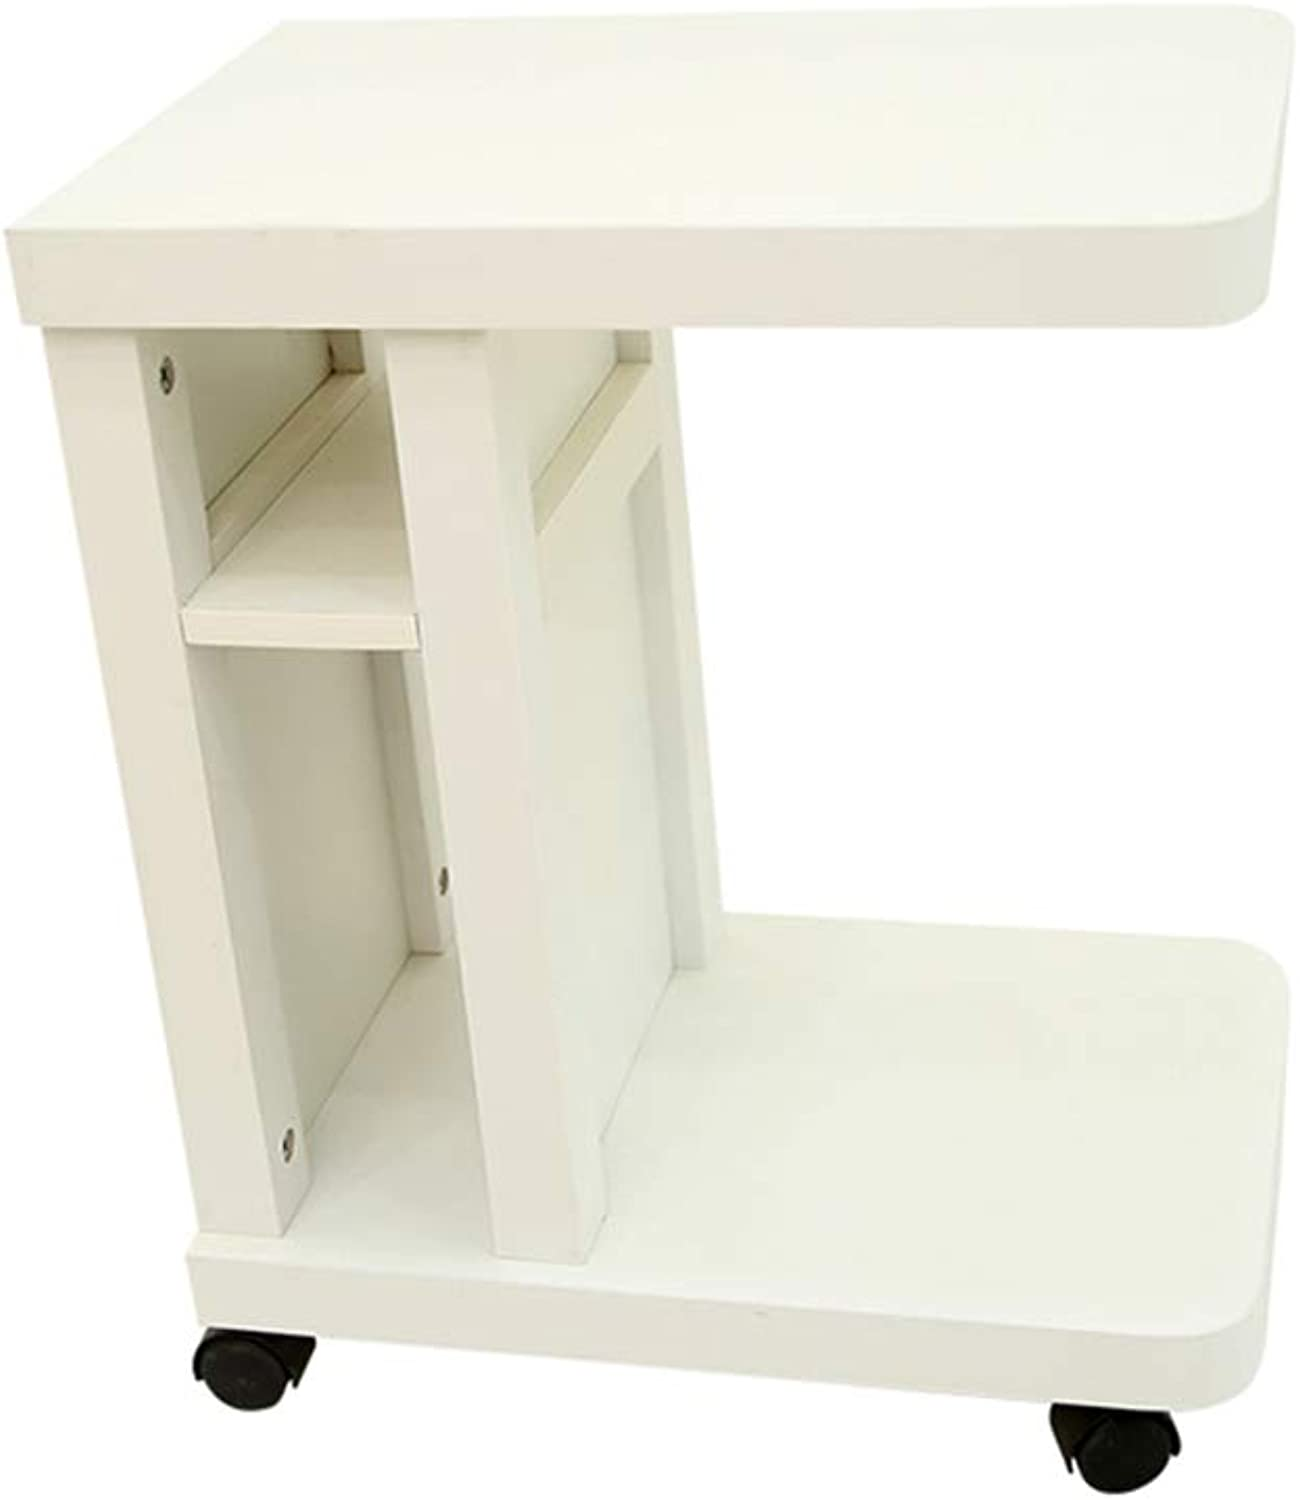 GJM Shop Bedside Cabinet Coffee Table Open Style Storage Simple Can Moving Bedside Table Furniture (color   3)